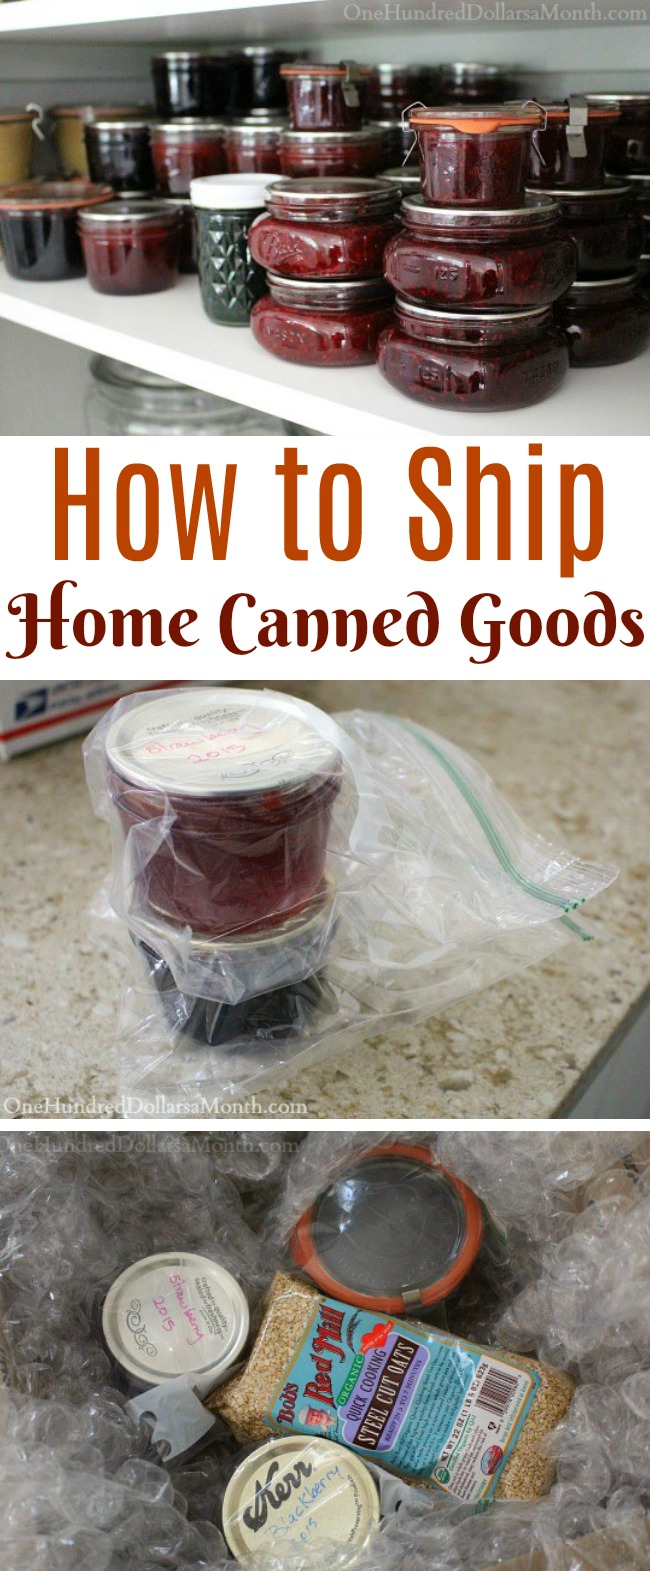 How to Ship Home Canned Goods